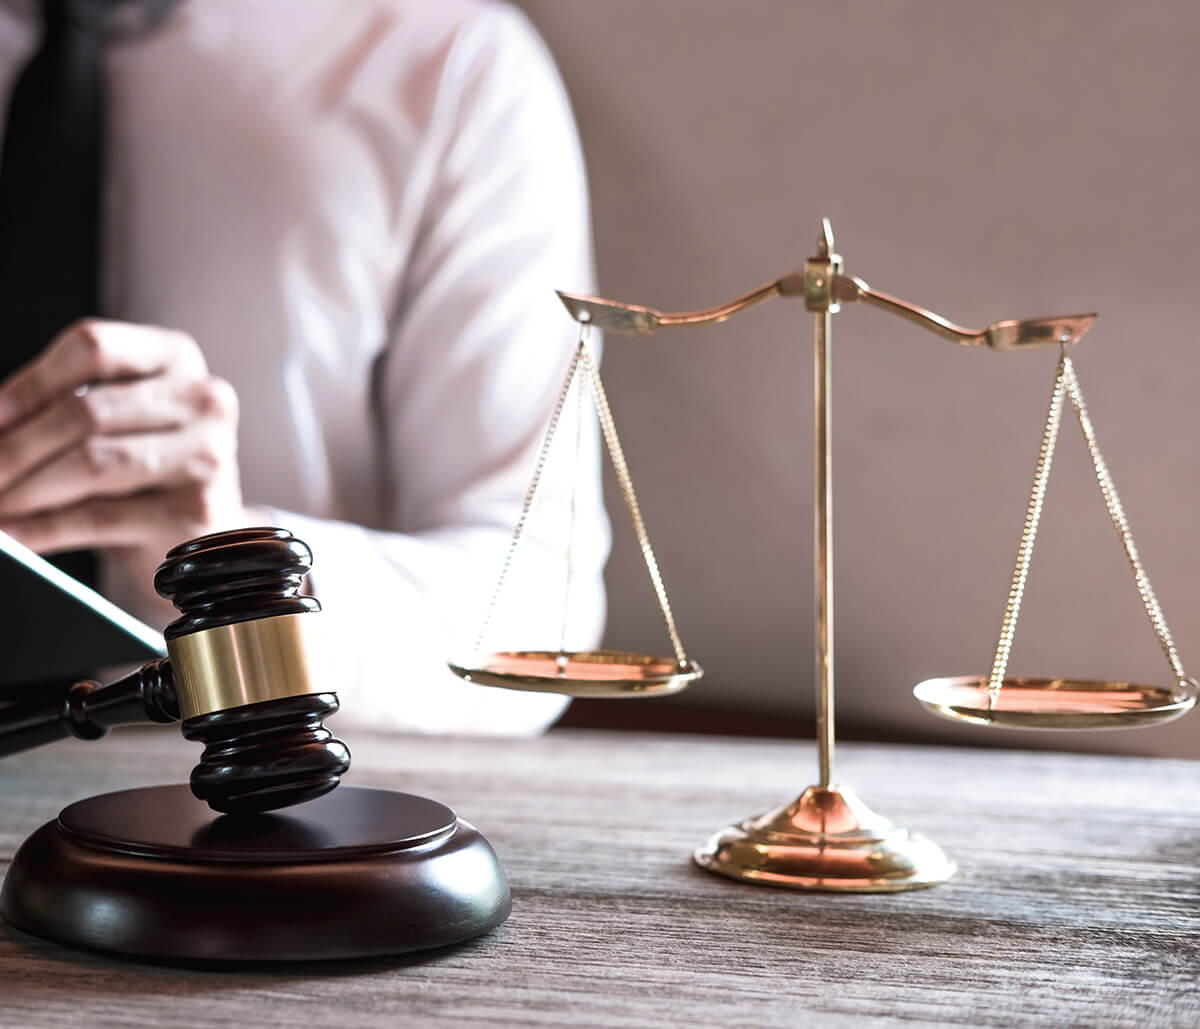 Litigation Legal Advice at Gujral Law Office in Mississauga Area